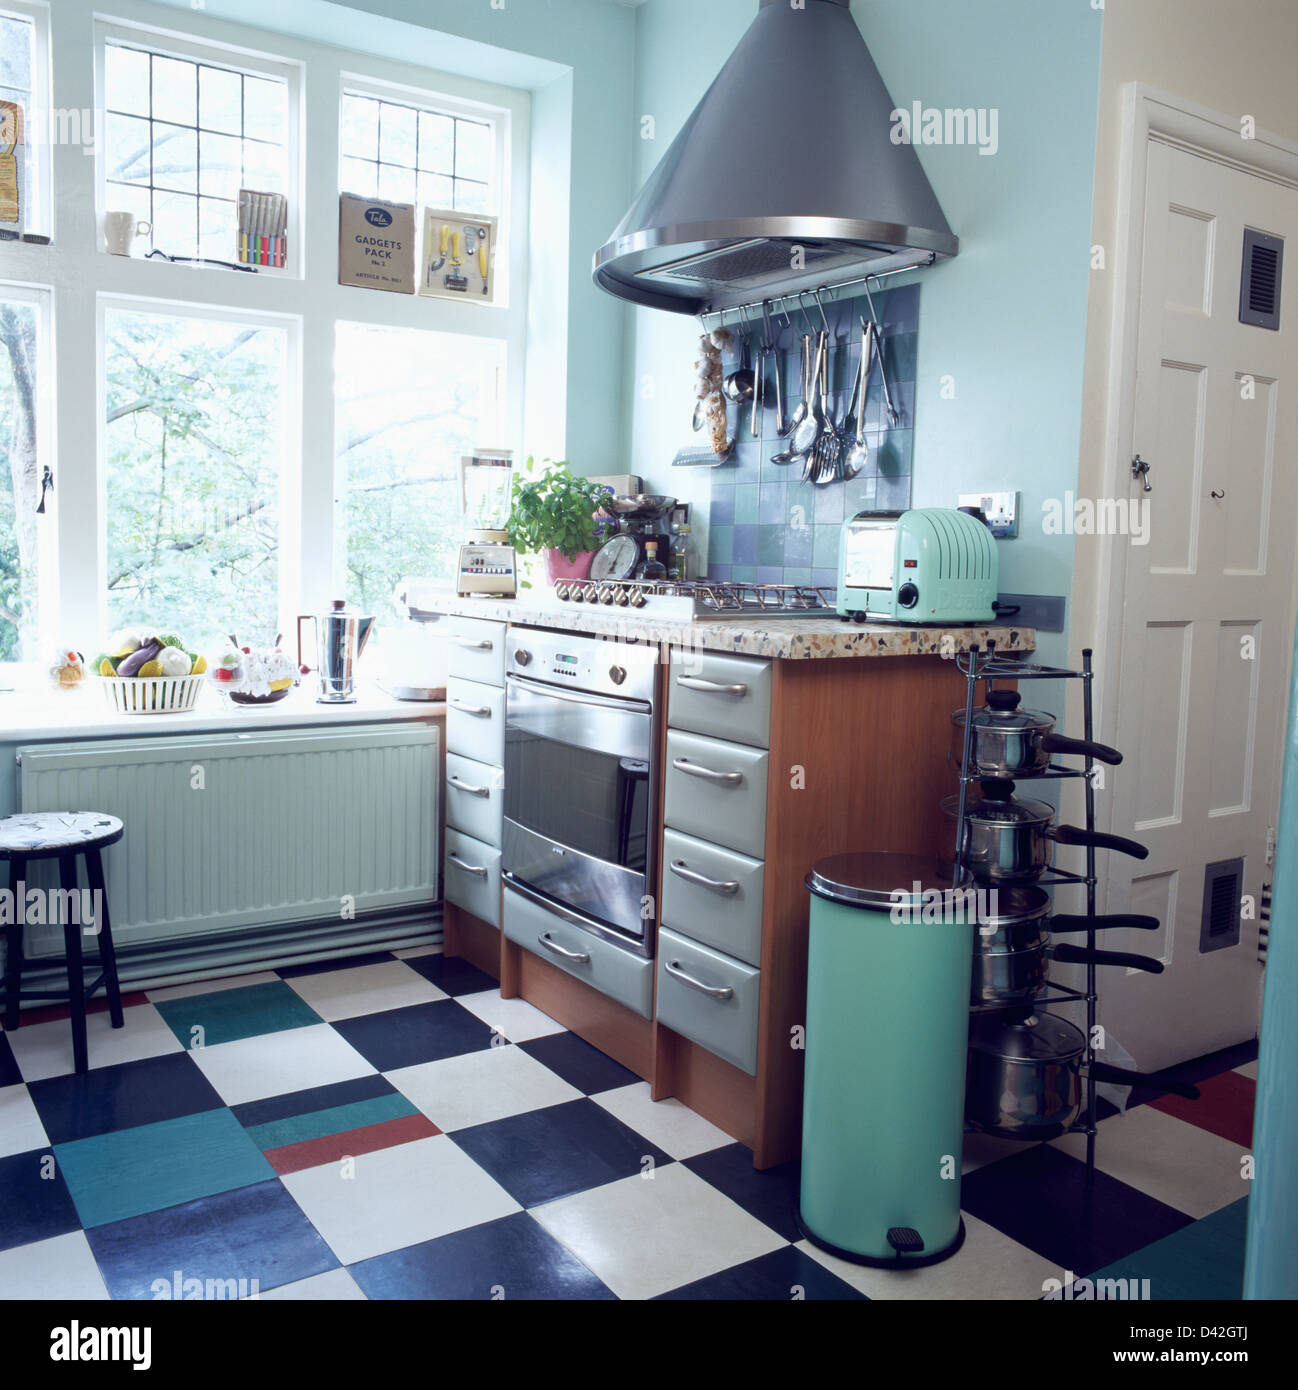 Chrome extractor above hob in pale turquoise kitchen with black+ ...